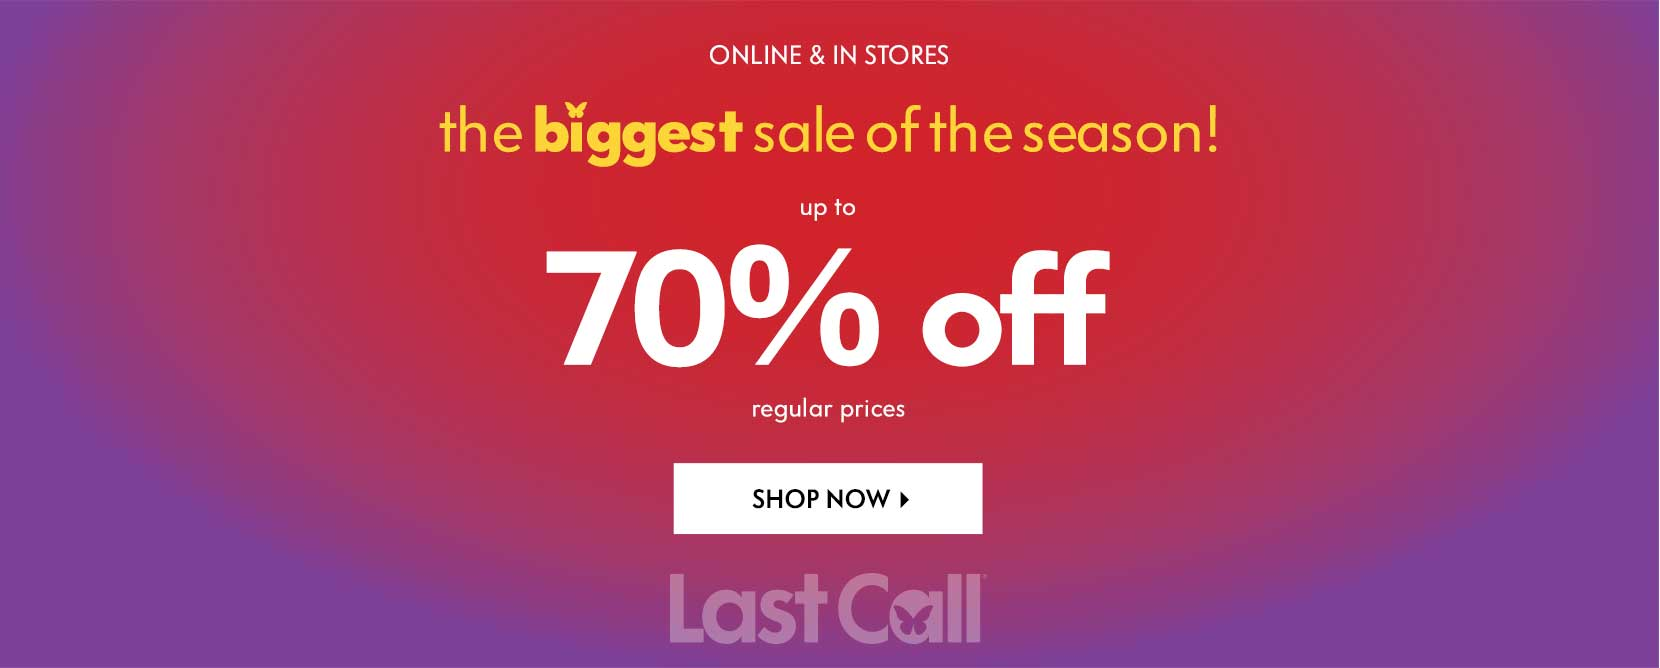 Online and in stores the biggest sale of the season! Up to 70% off refular prices. Shop Last Call